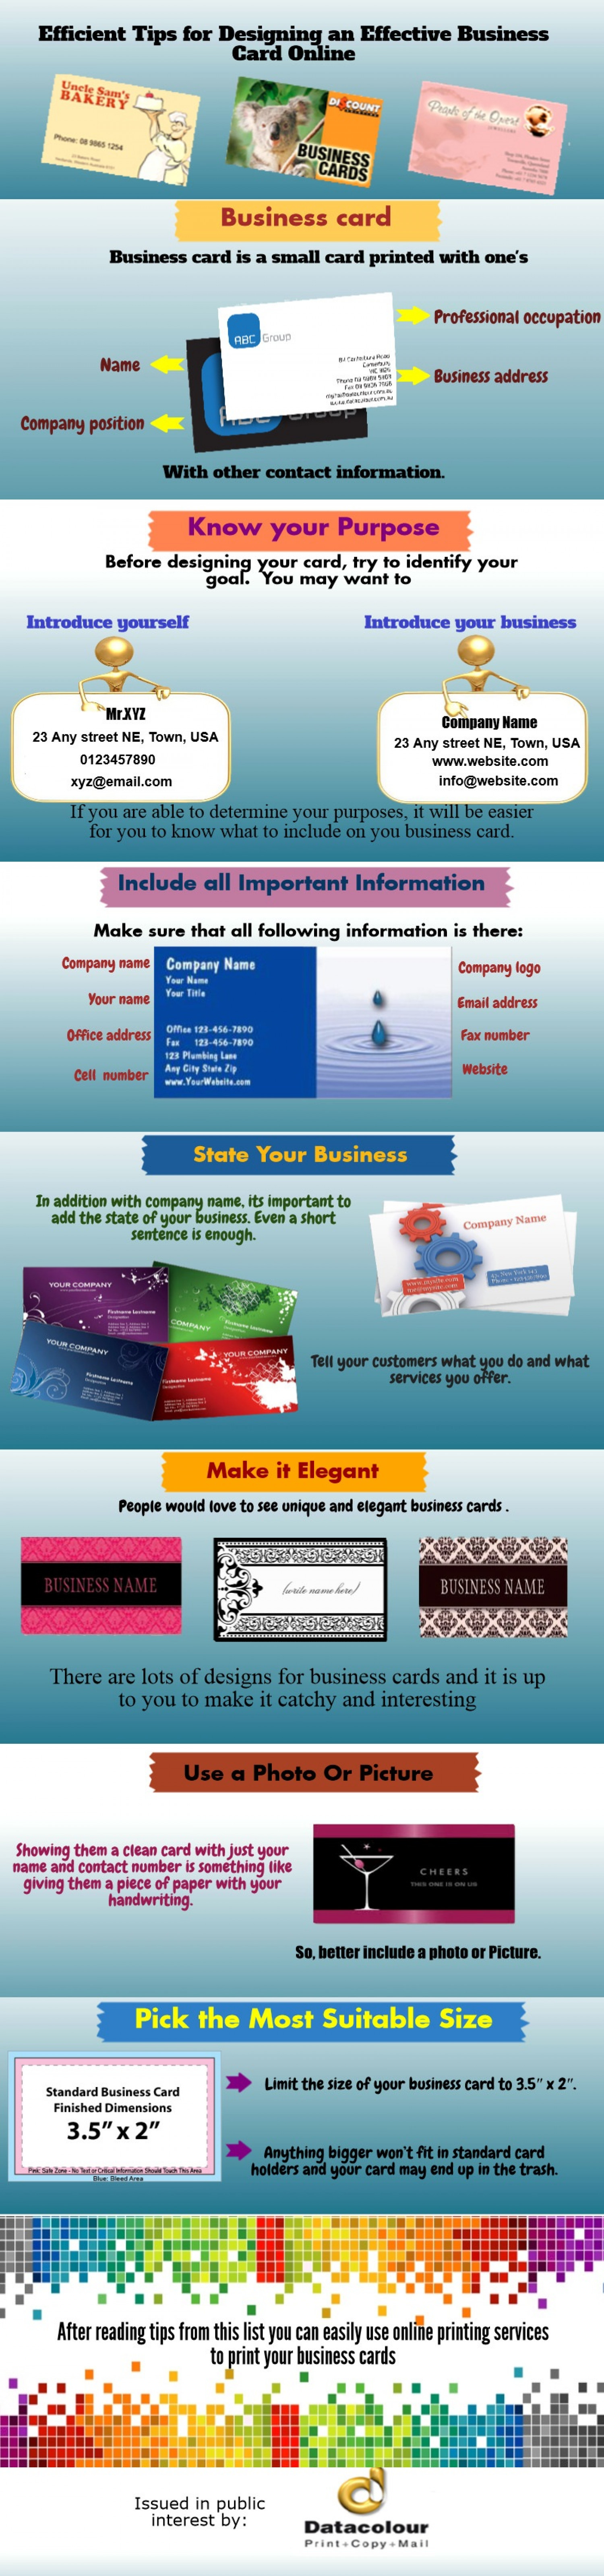 Efficient Tips for Designing an Effective Business Card Online Infographic